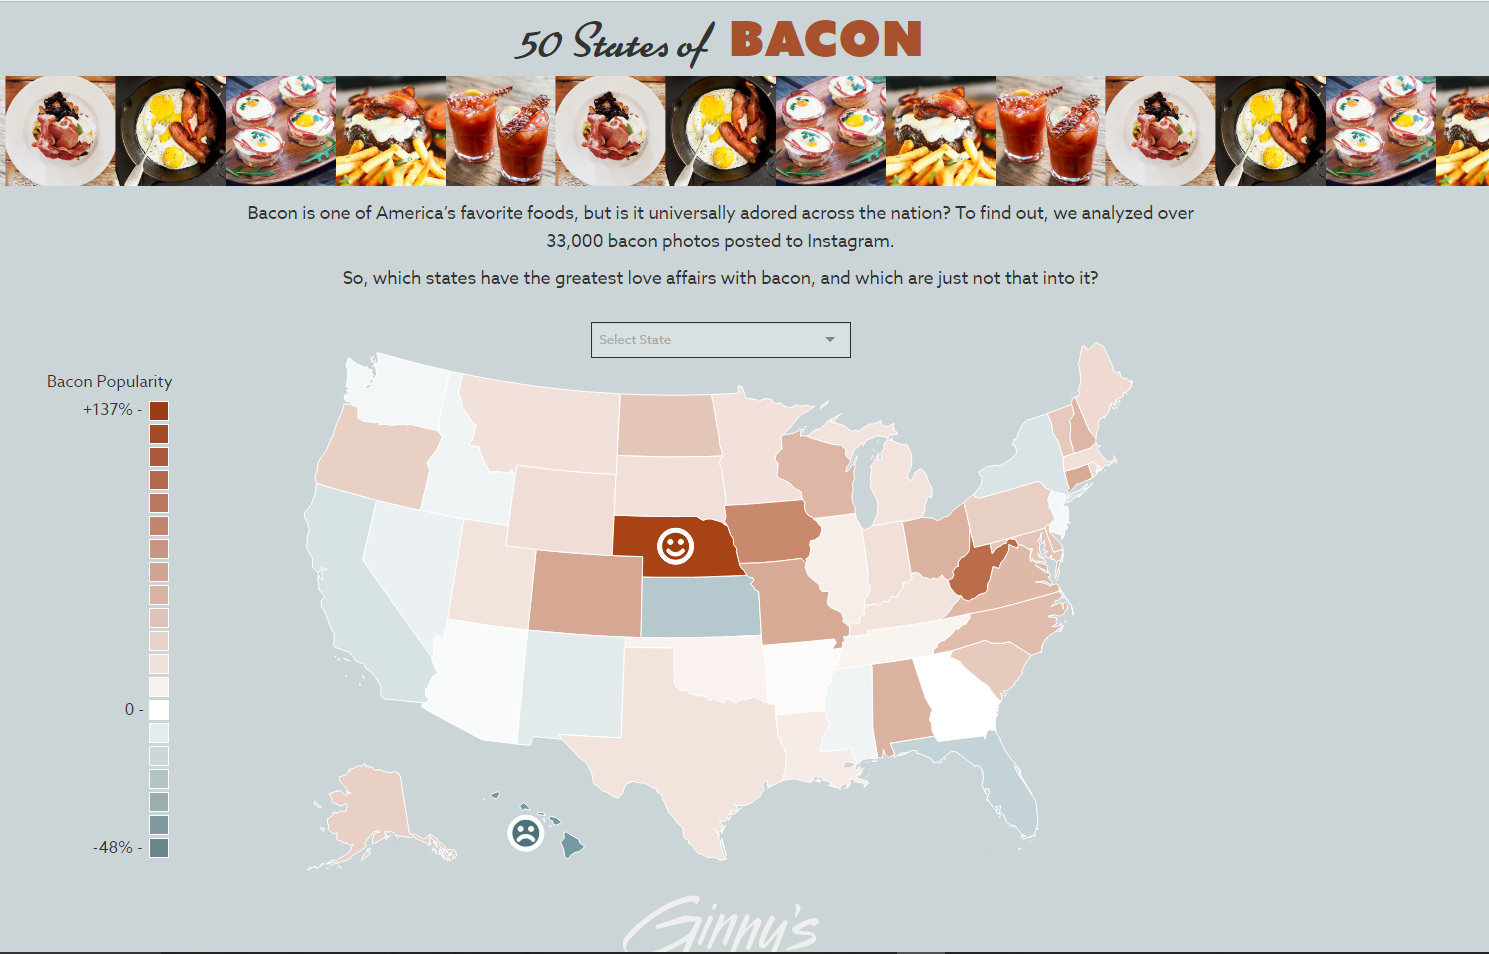 Ginny's Marketing Campaign - 50 States of Bacon